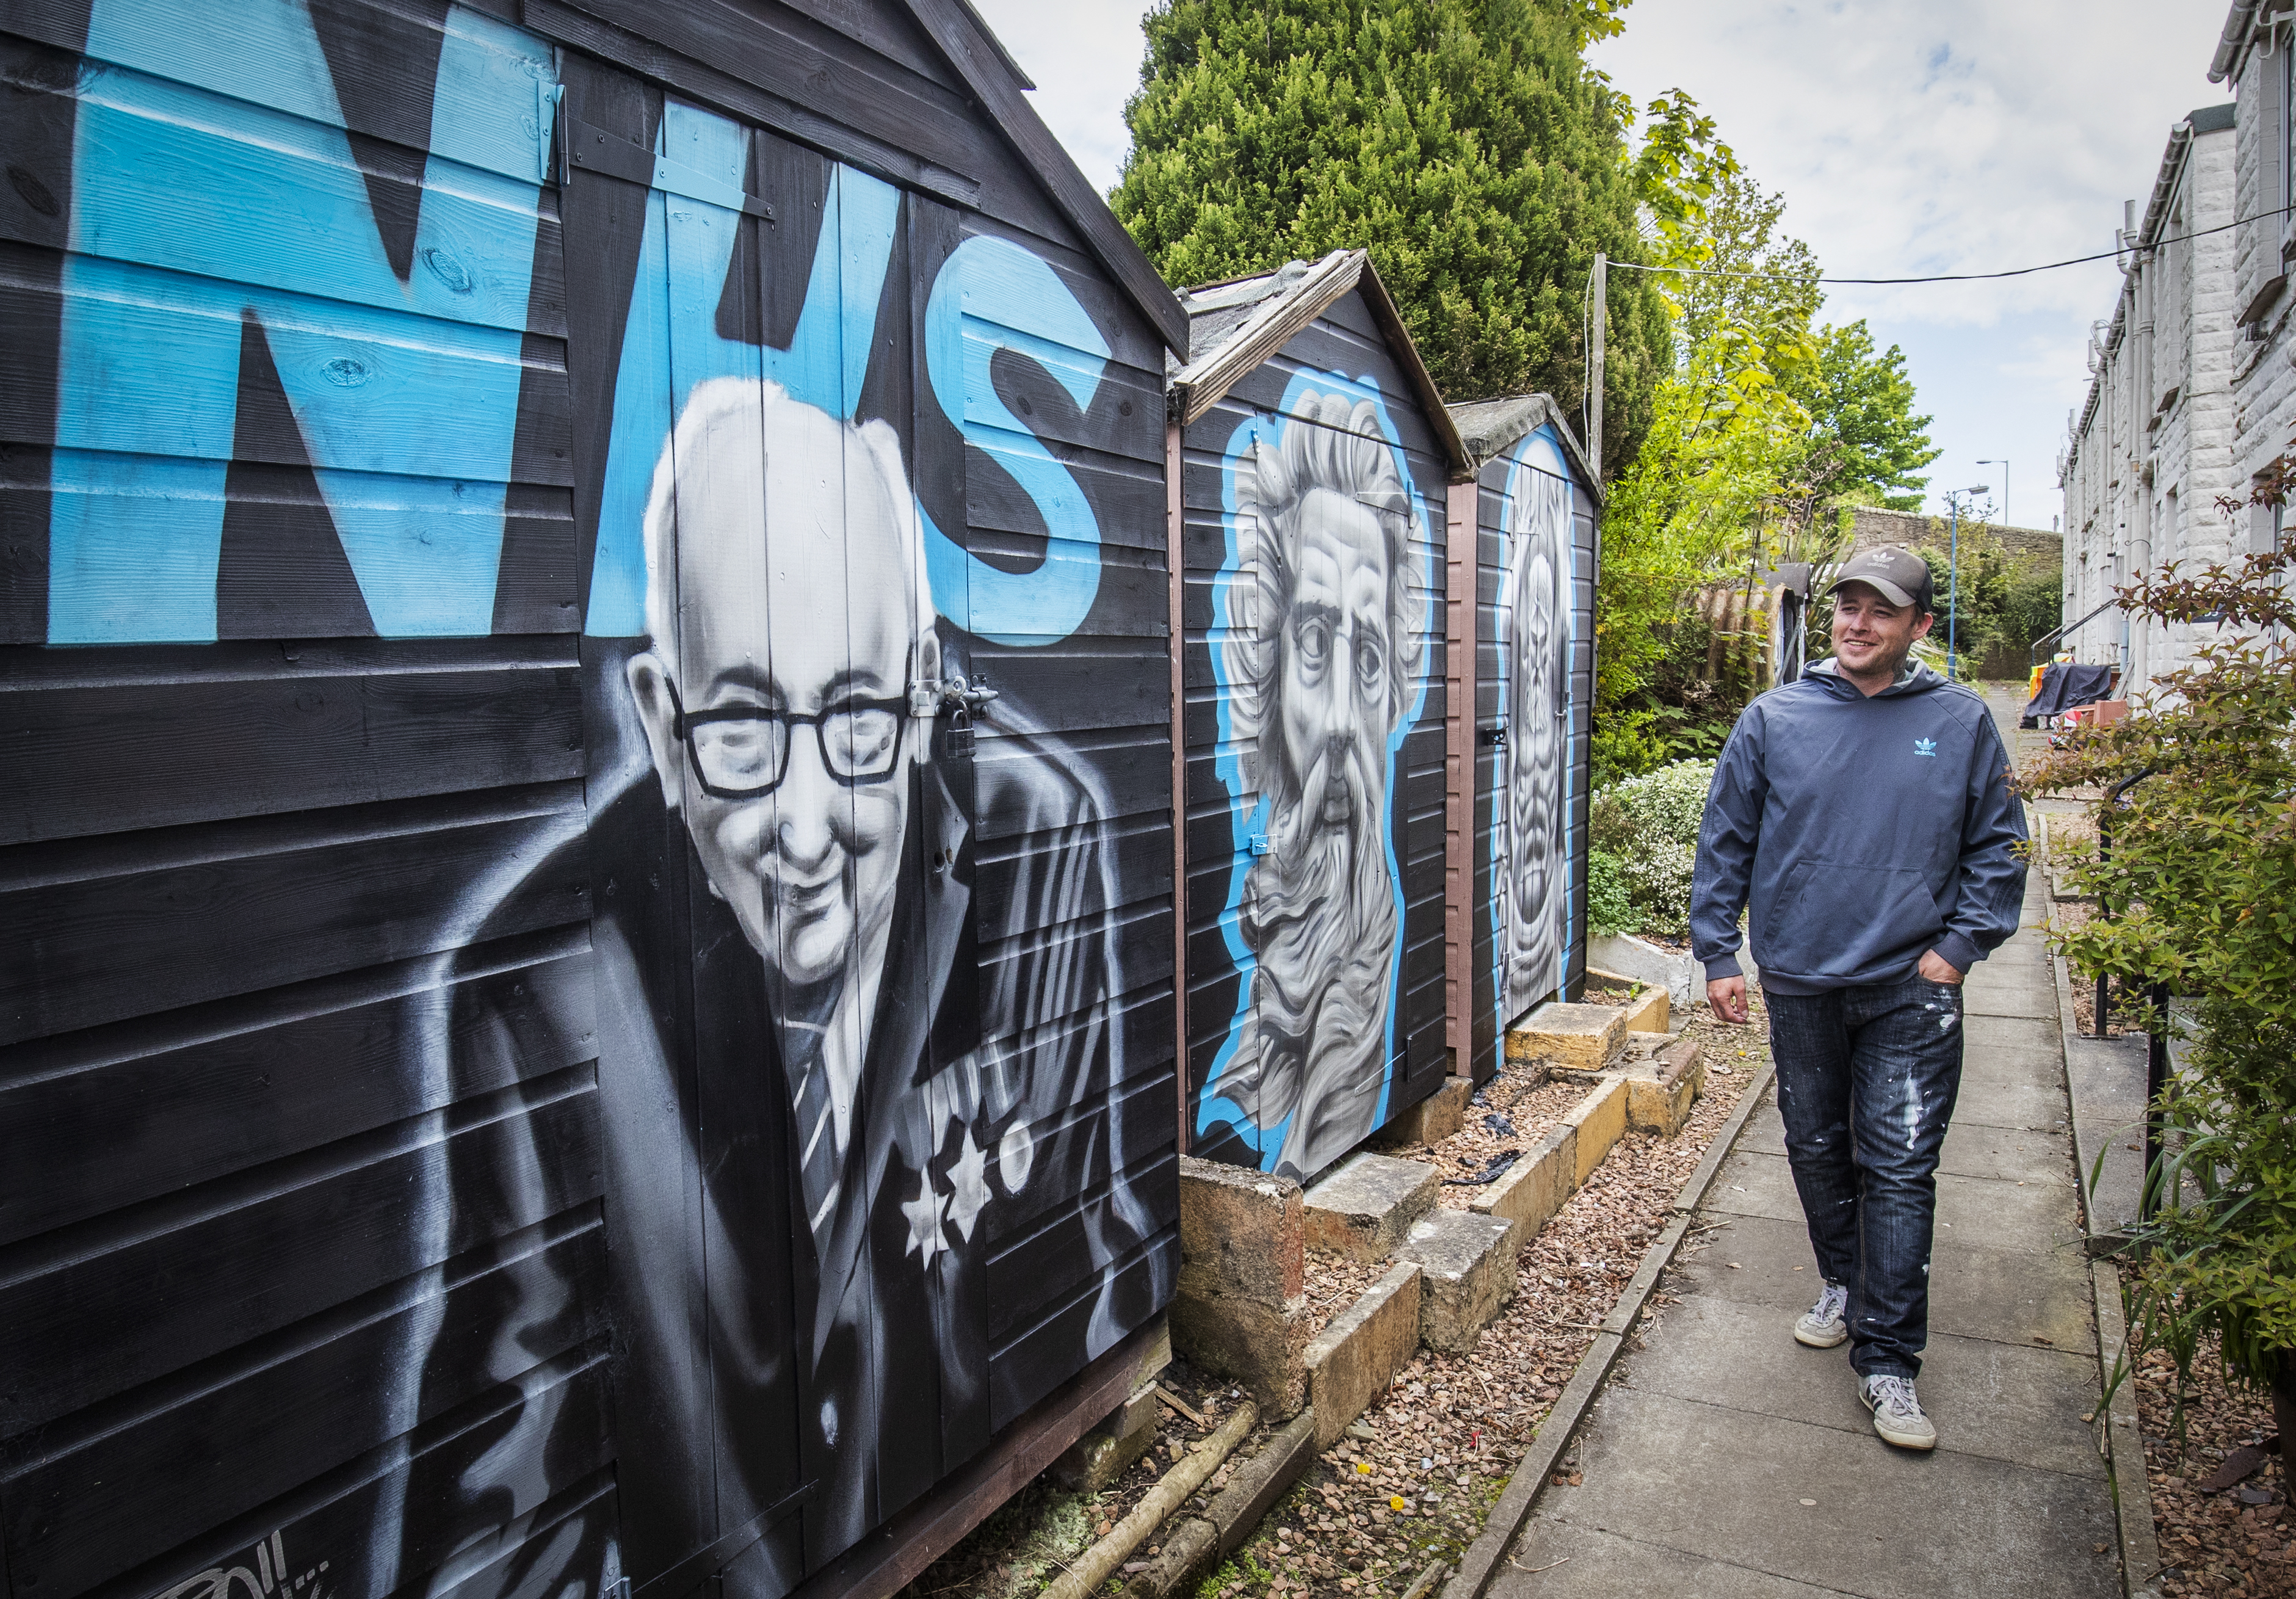 Artist Symon Mathieson alongside the mural he painted in tribute to Captain Tom and the NHS on a garden shed in Dundee centre, as the UK continues in lockdown to help curb the spread of the coronavirus.